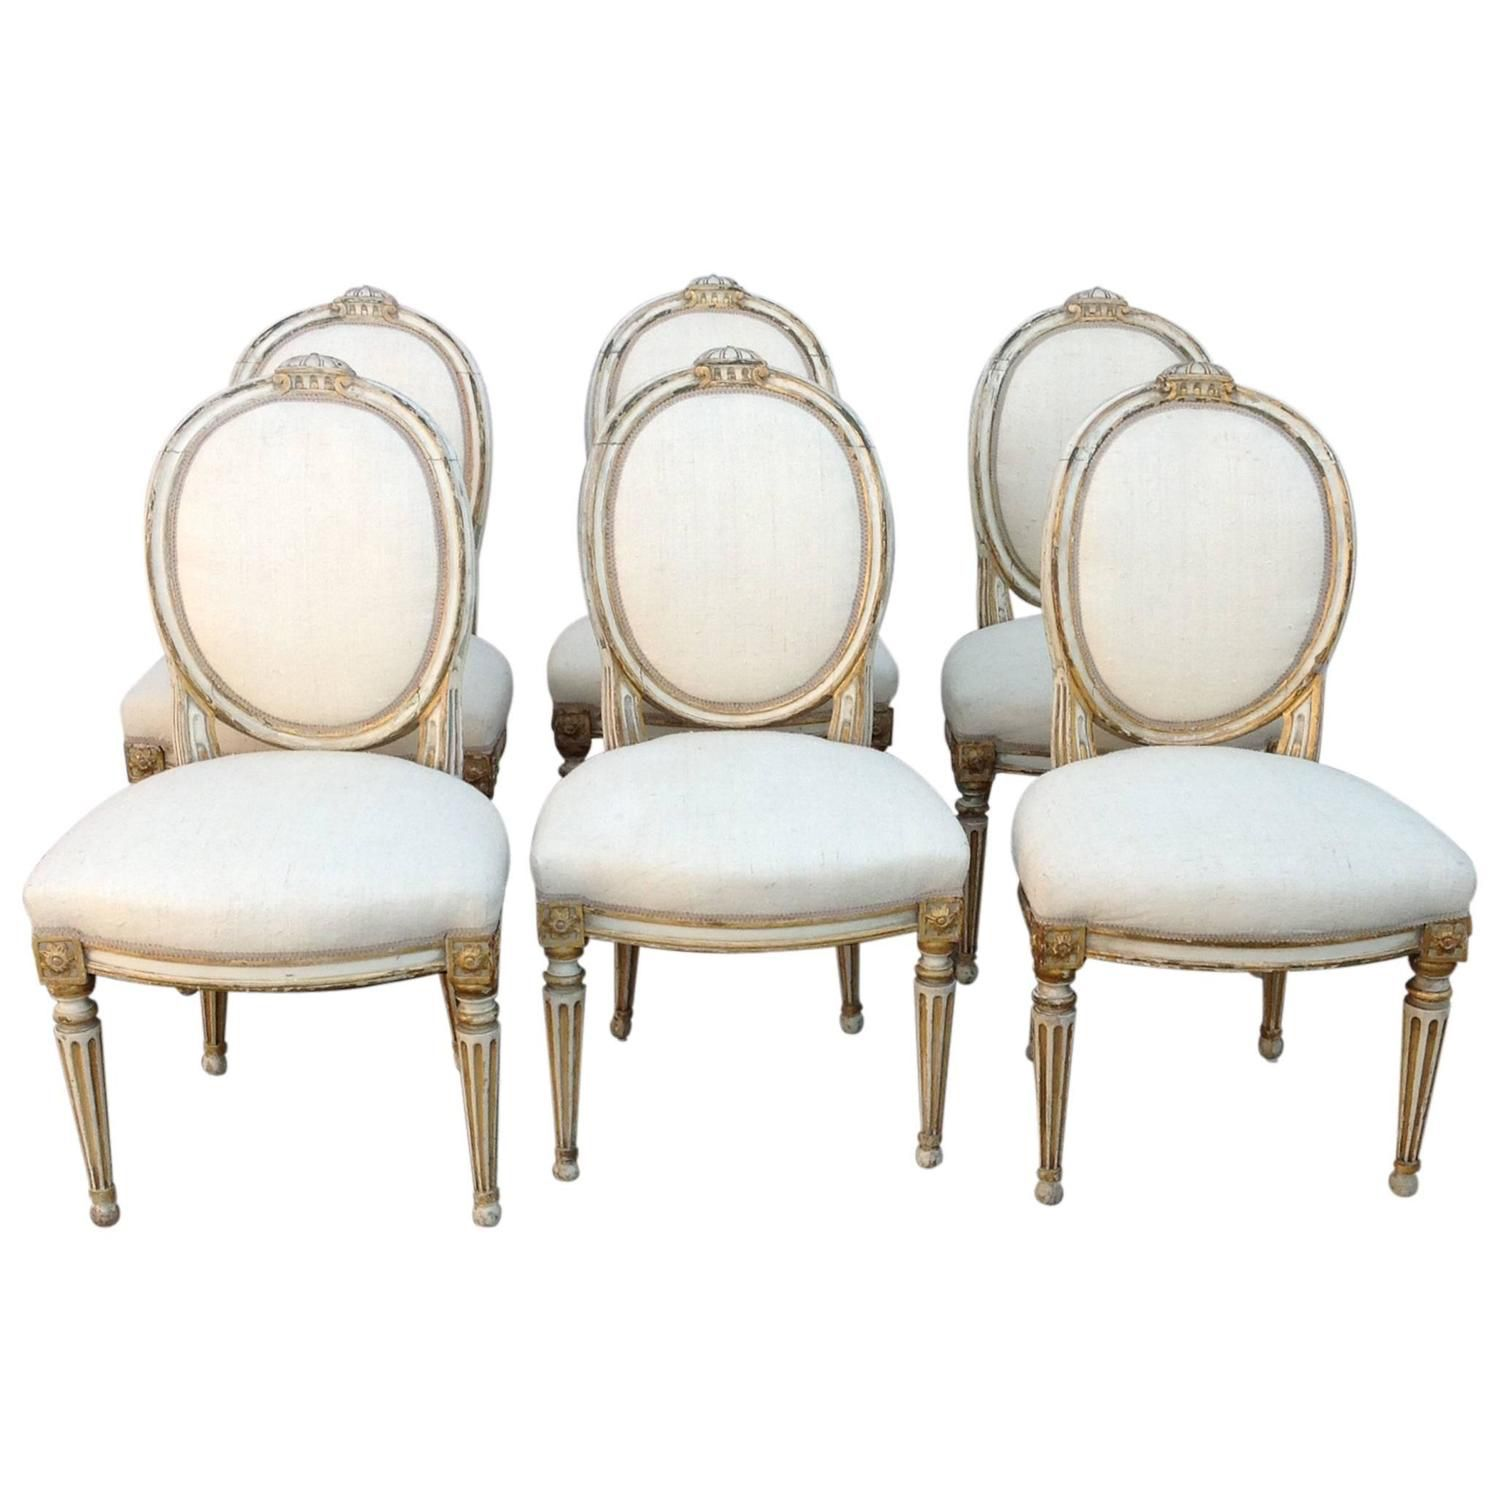 View This Item And Discover Similar Dining Room Chairs For Sale At